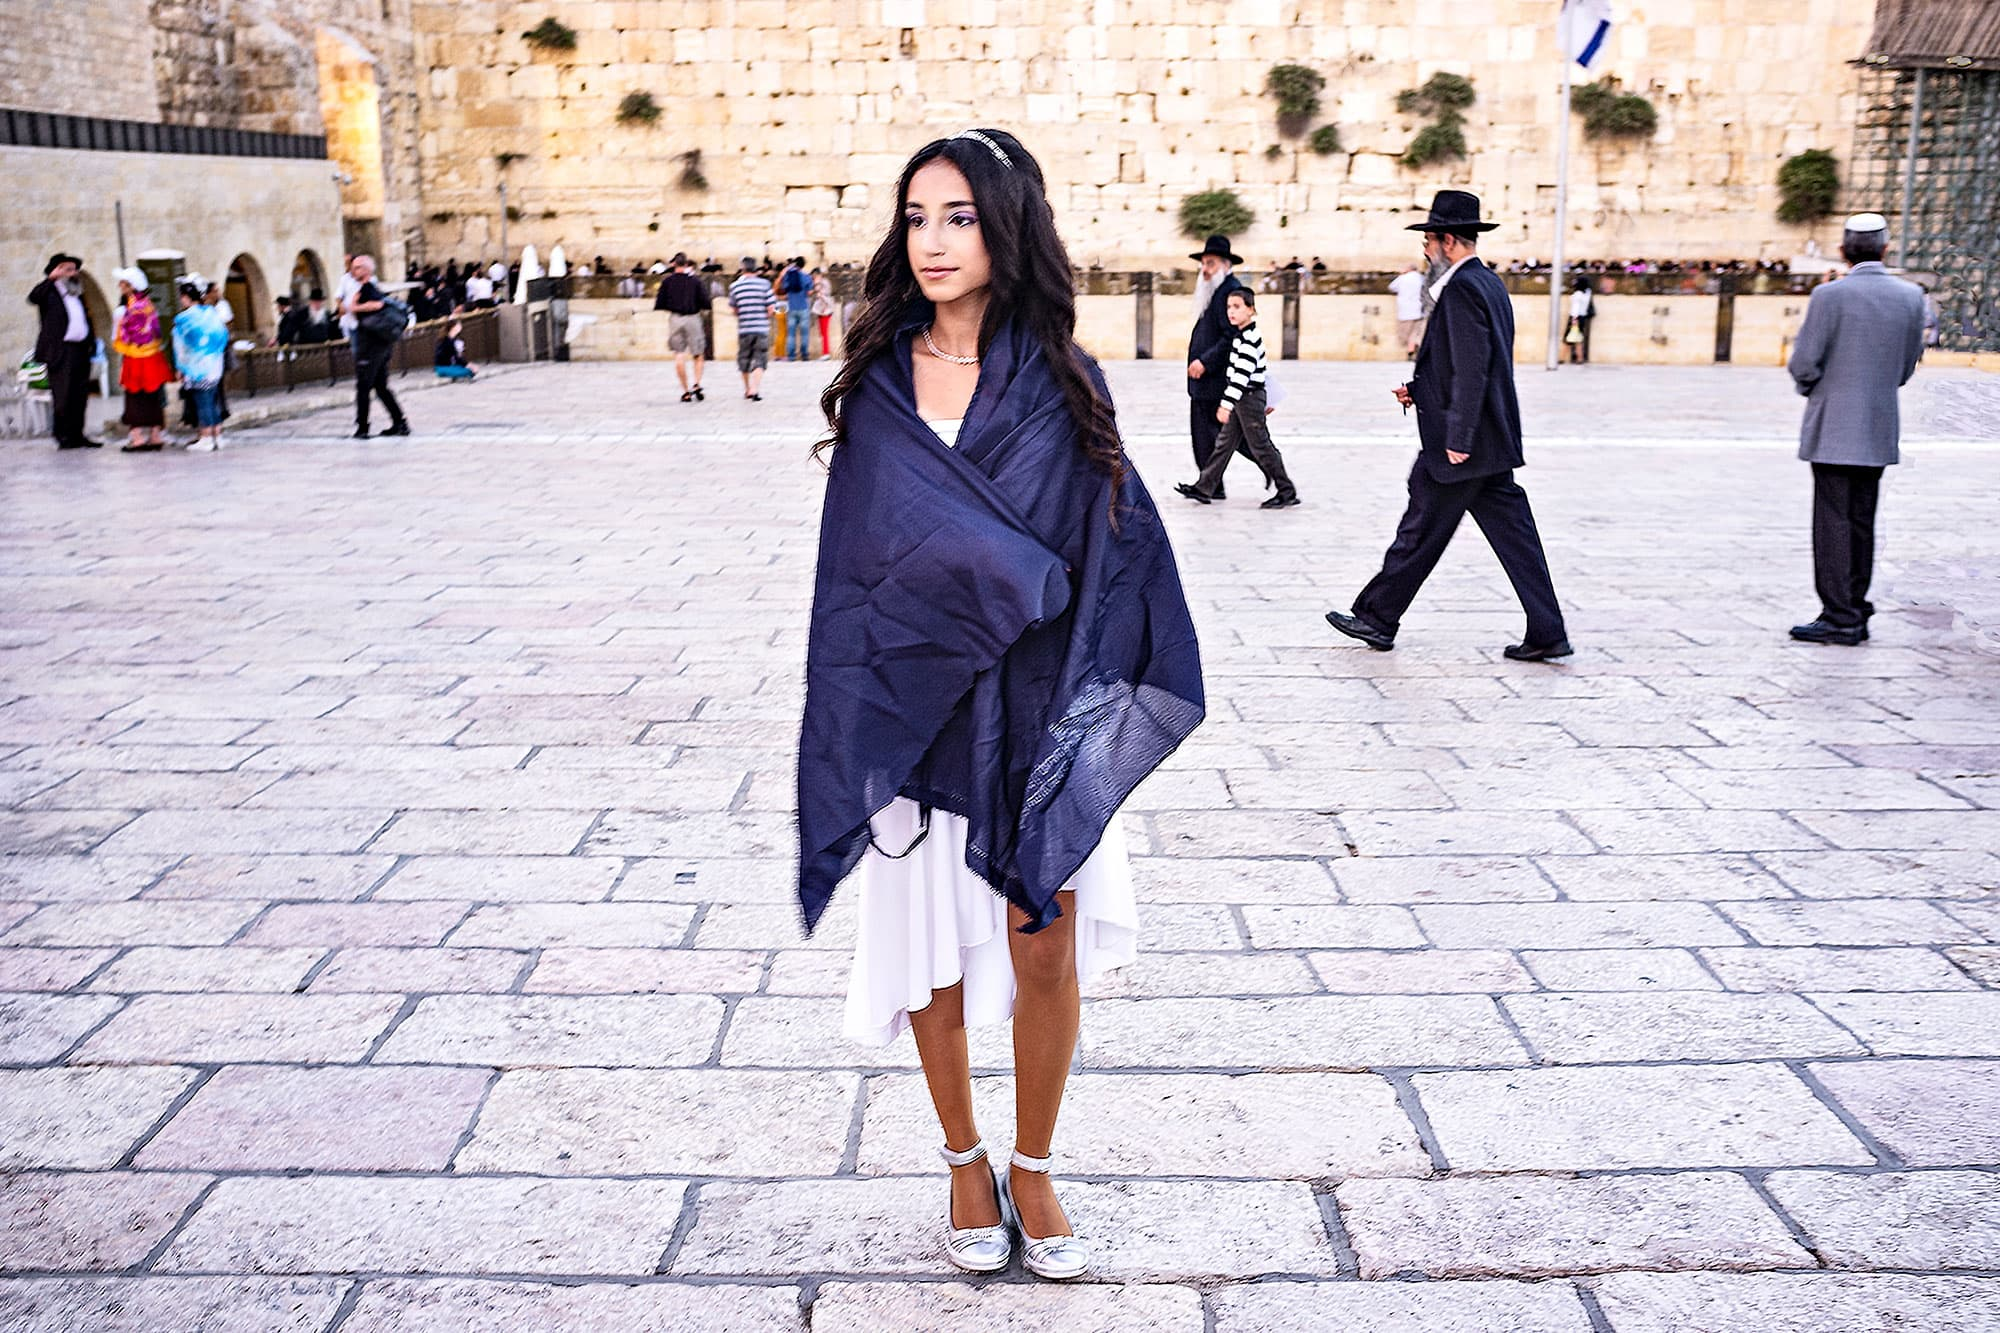 arthur-lazar-Young-Woman-Western-Wall